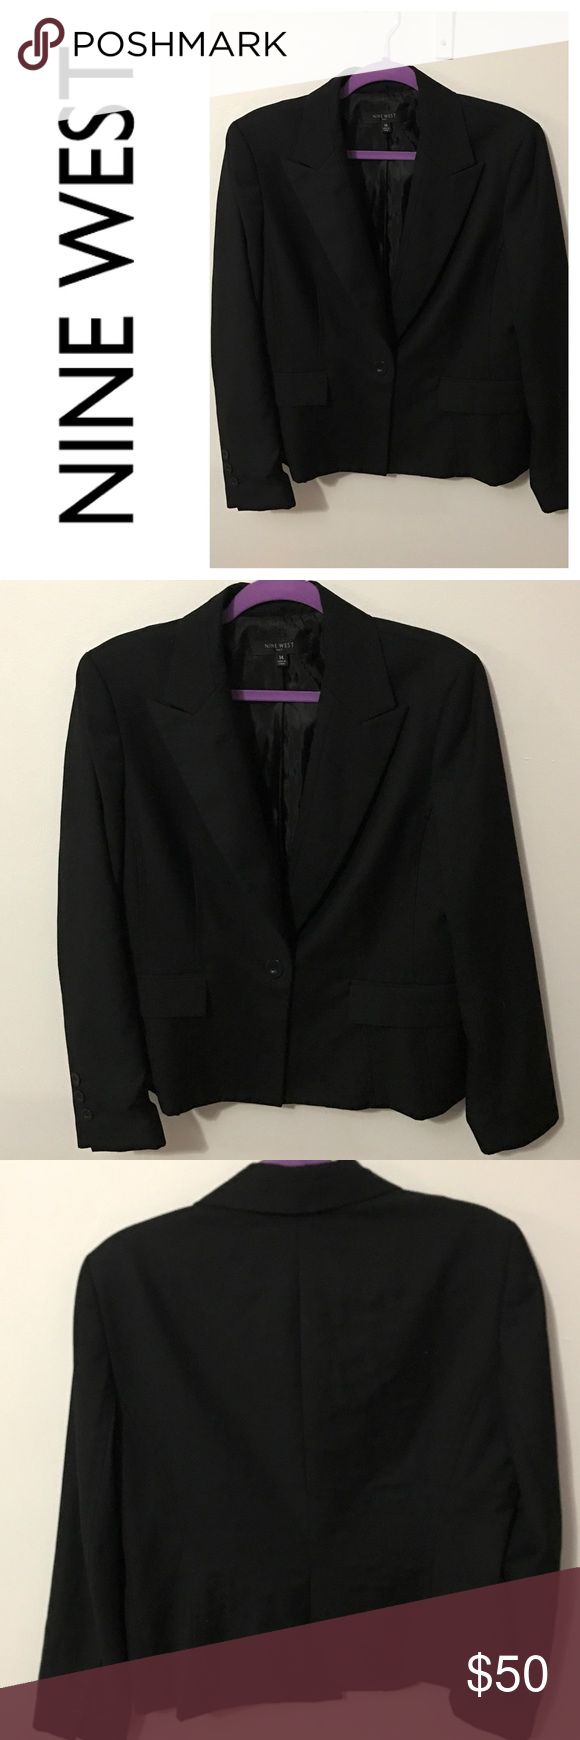 """🆕 Gorgeous Black Suit Jacket ✨FEATURES ✨   - 22"""" Bust  - 14.5"""" Armpit to Hem - 25"""" Sleeve Length  - No flaws or imperfections  - PHOTOS ARE NOT EDITED/FILTERED Nine West Jackets & Coats Blazers"""